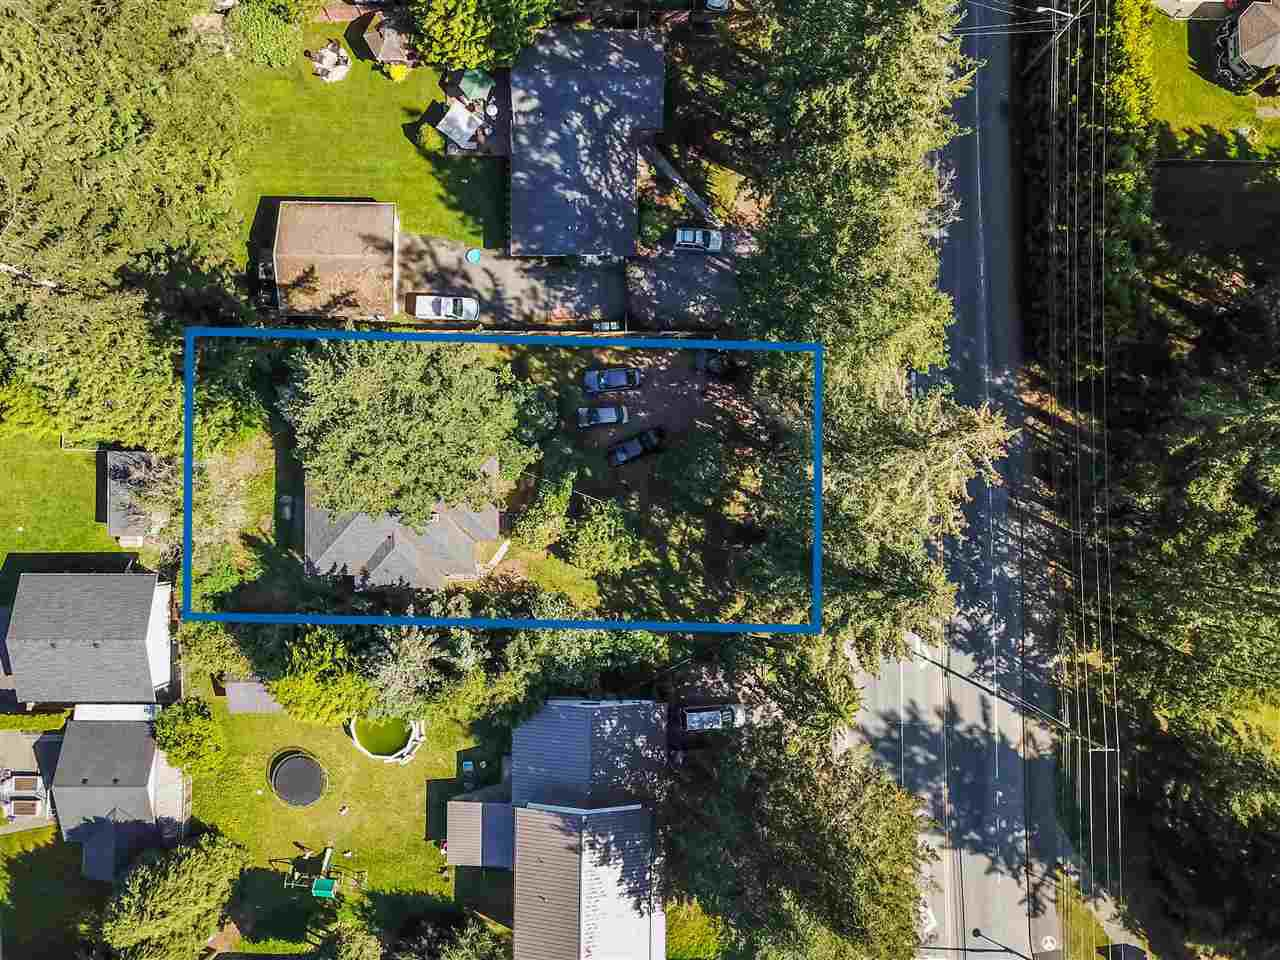 """Main Photo: 3769 208 Street in Langley: Brookswood Langley House for sale in """"Brookswood"""" : MLS®# R2368423"""